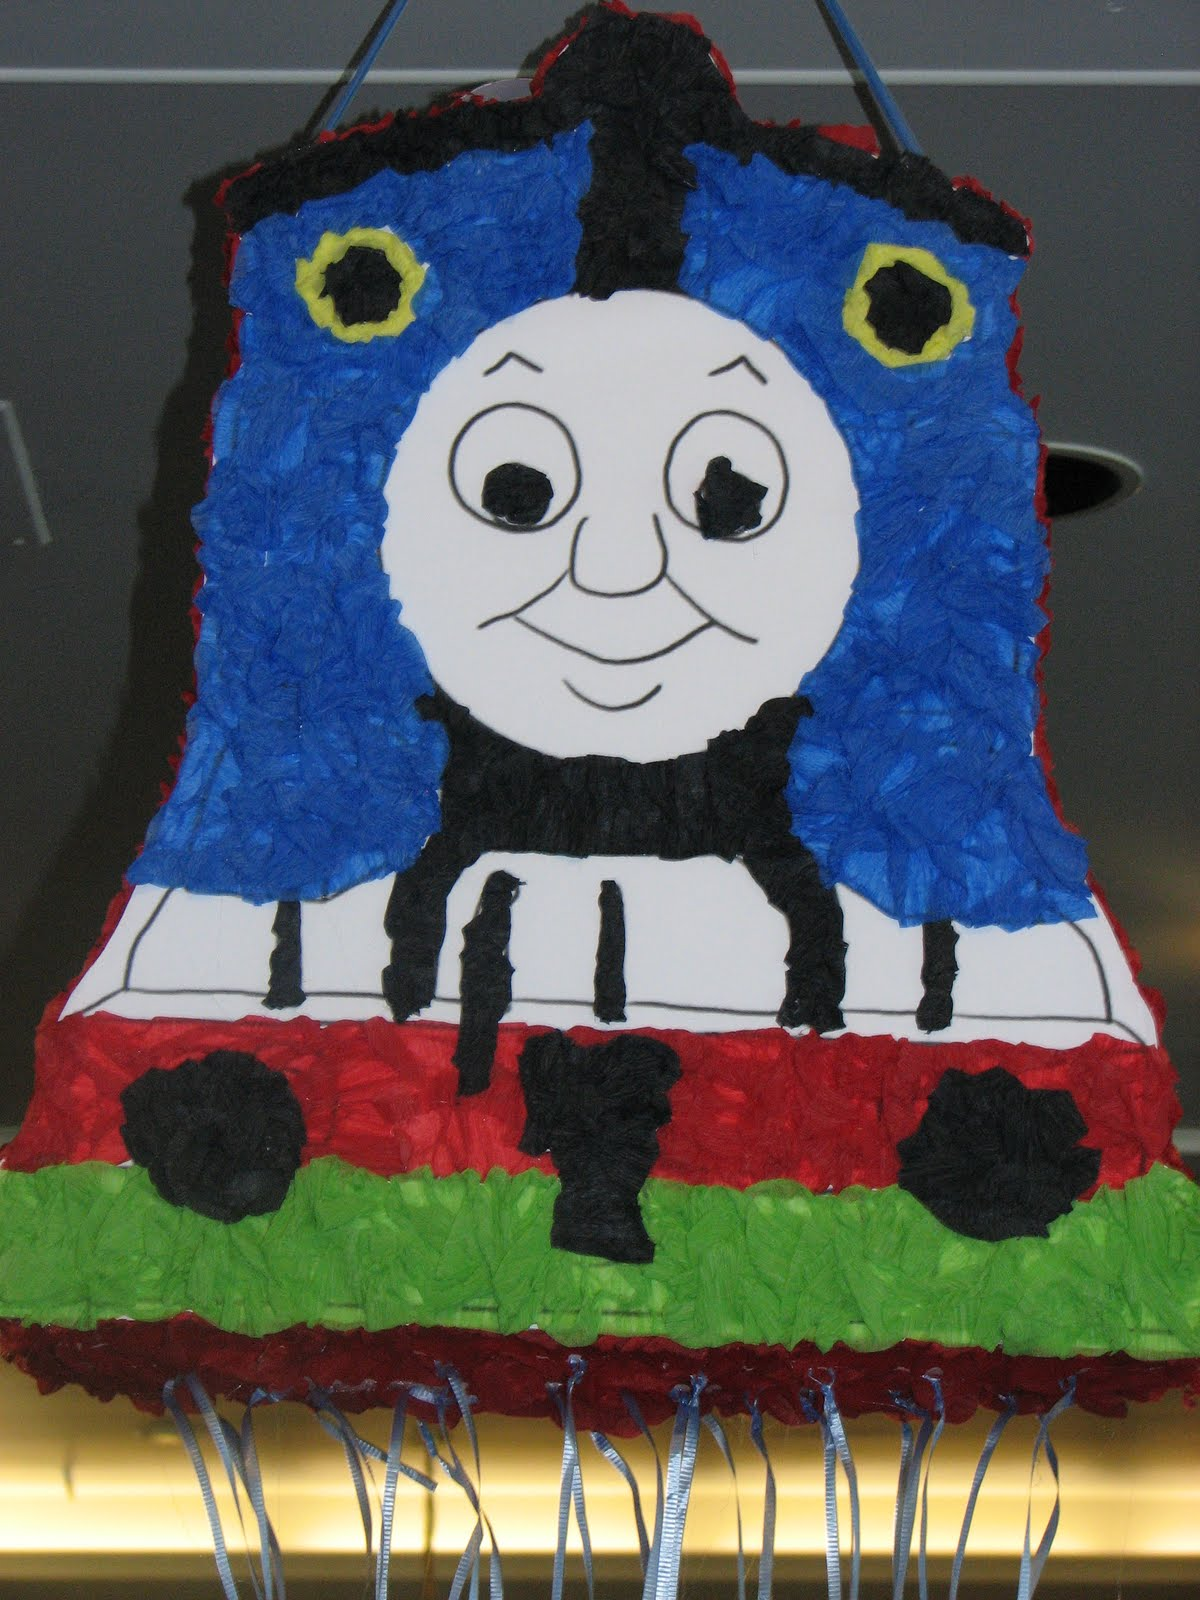 Utopia Party Decor: Thomas and Friends Party